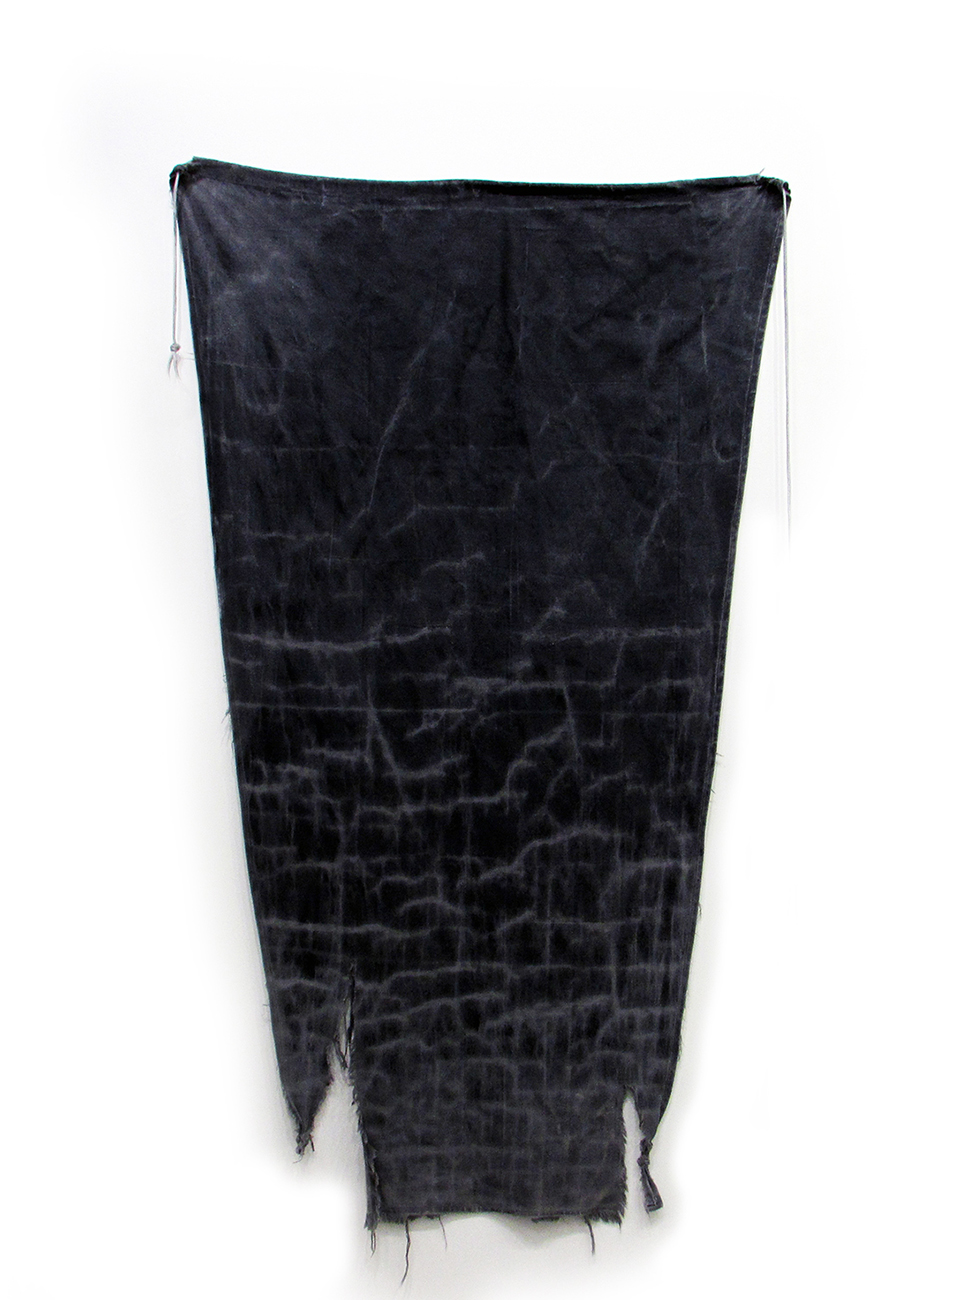 """dead black flag"" weather-worn canvas flag, 2014"